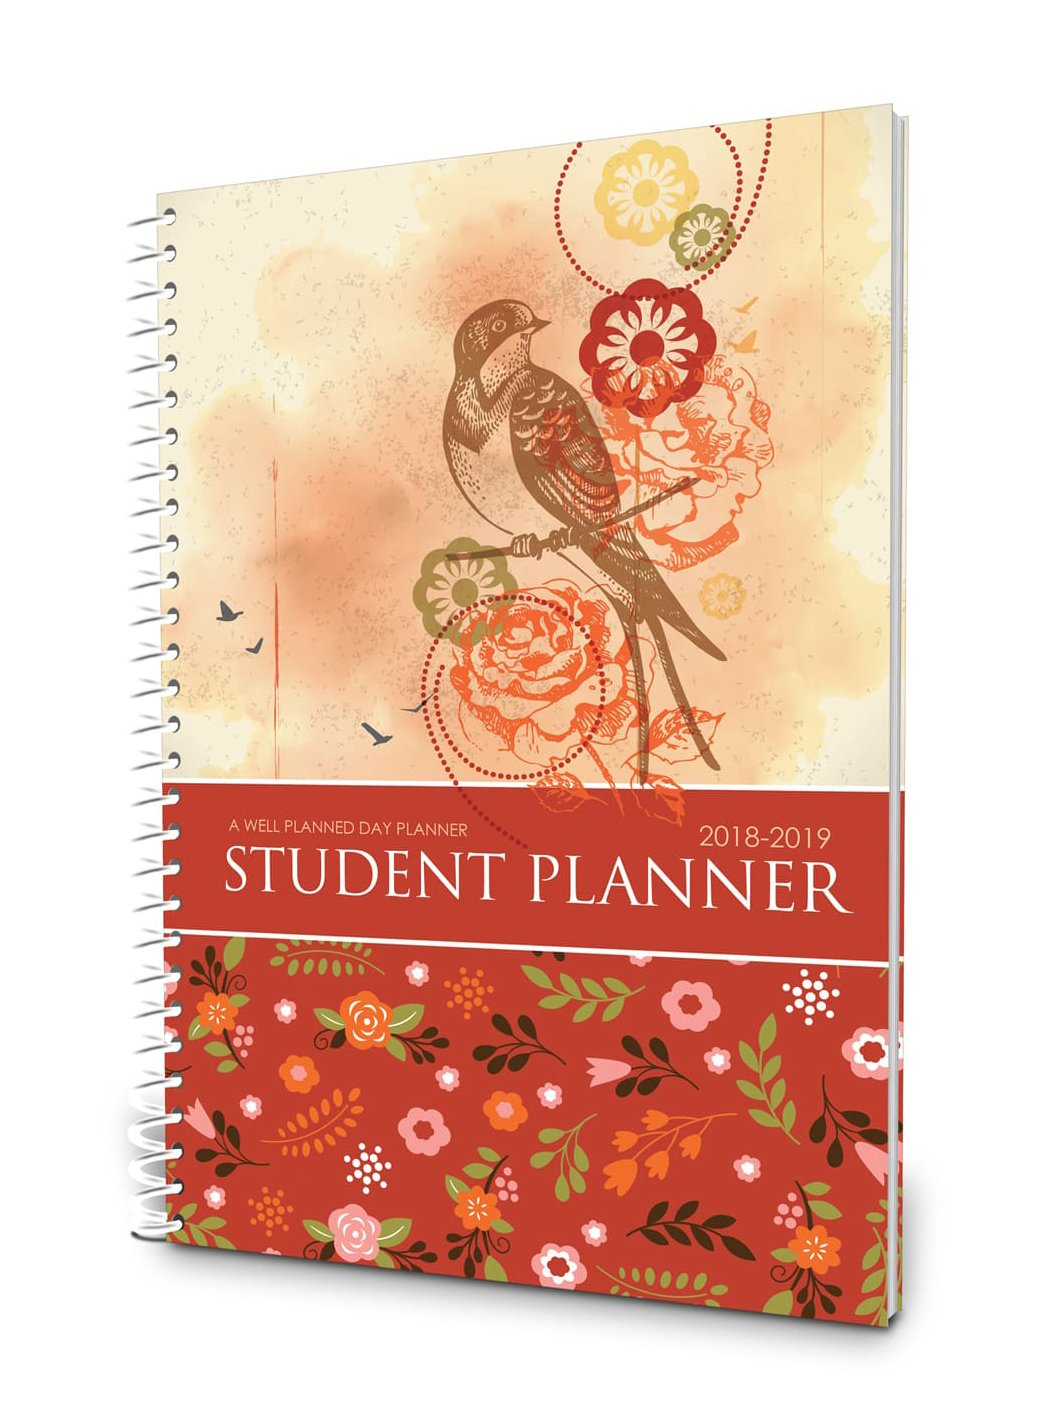 Well Planned Day, Student Planner Floral Style, July 2018 - June 2019